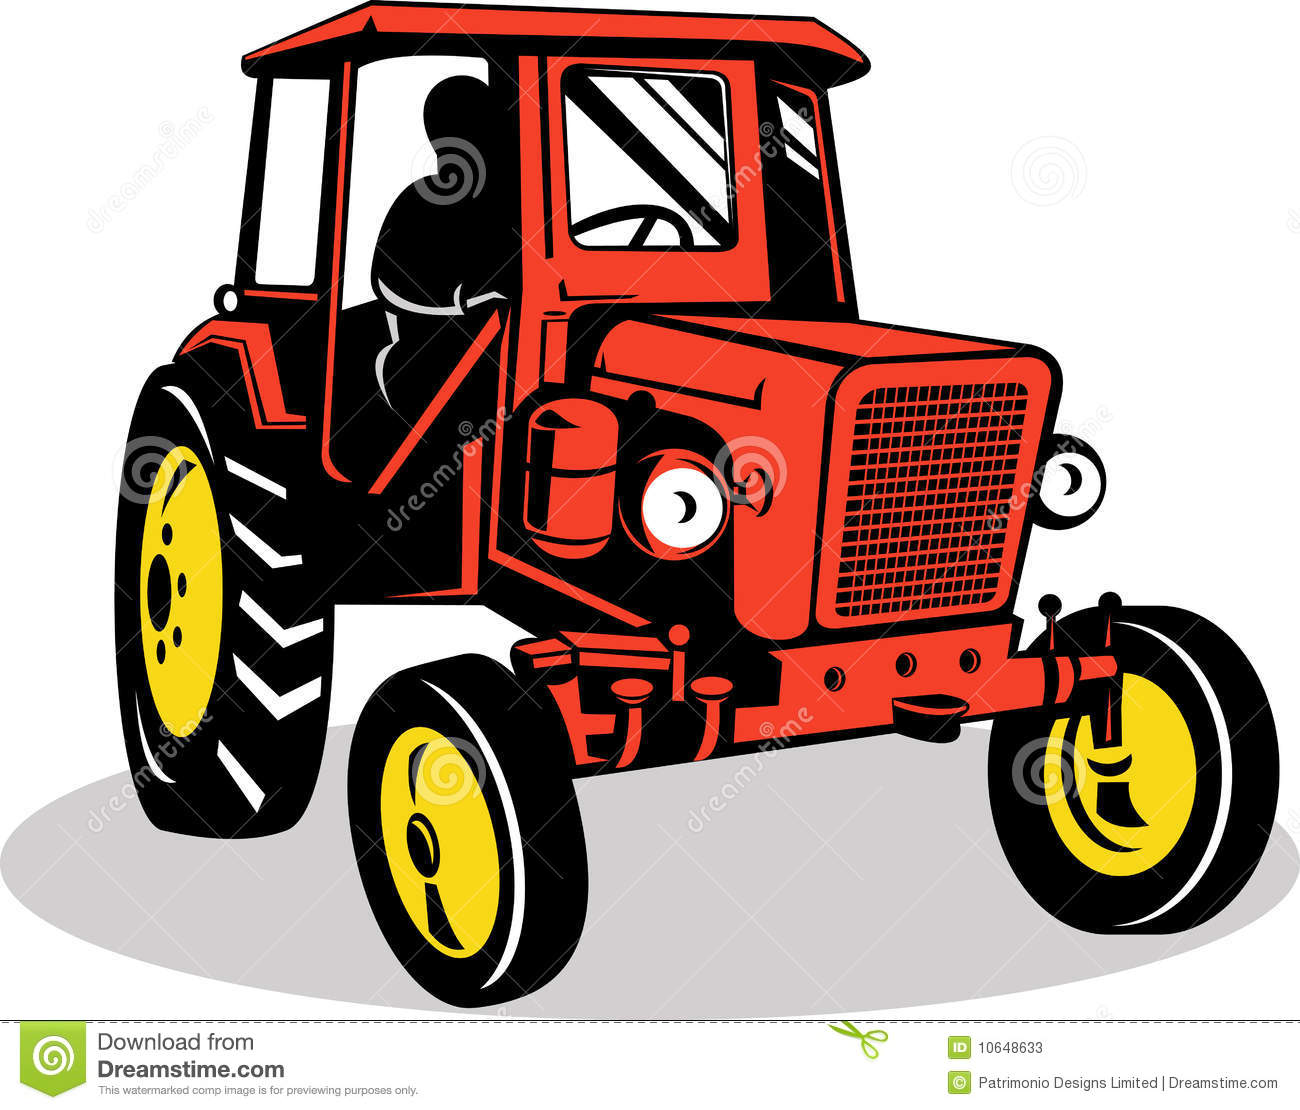 vintage tractor clipart - photo #16